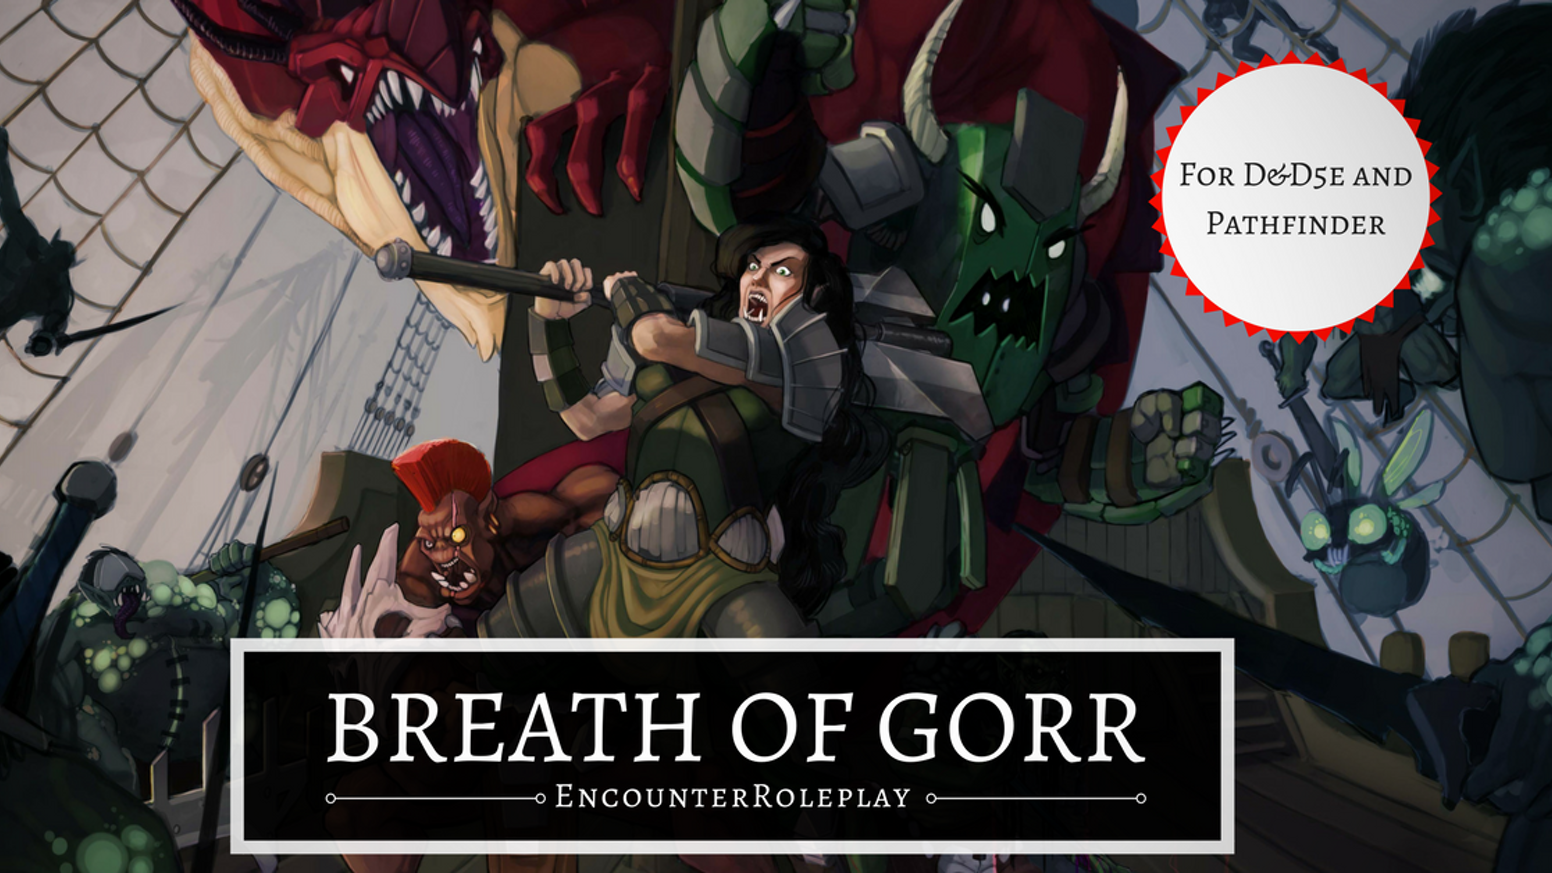 The Breath of Gorr is a Complete Digital D&D Module for the 5th Edition of Dungeons & Dragons & for the Pathfinder Roleplaying game.